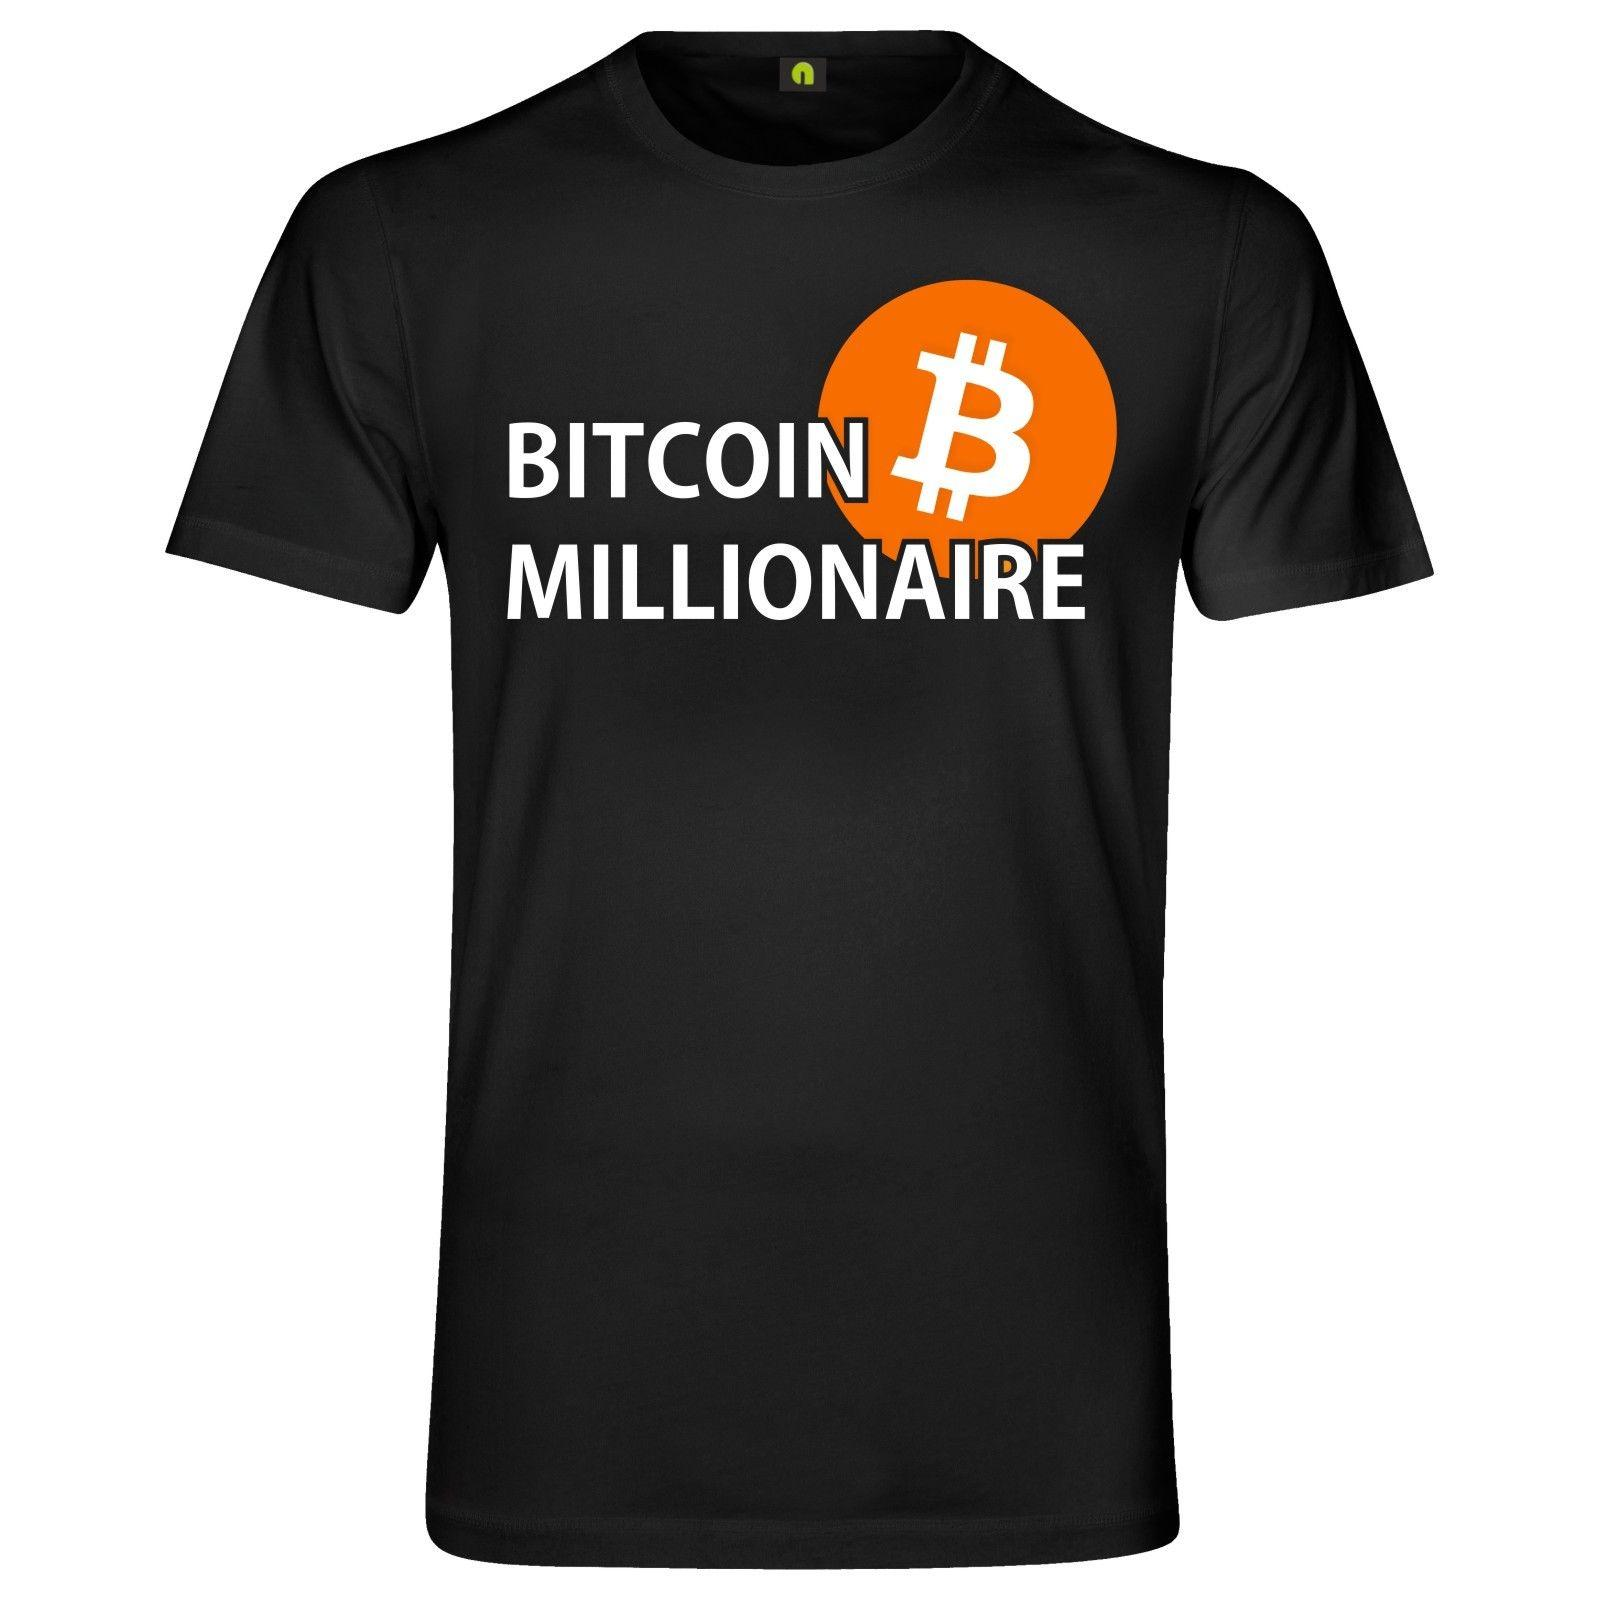 b2d5e03d Bitcoin Millionaire T Shirt Stock Exchange | Krypto Crypto Cool Casual  Pride T Shirt Men Unisex New Fashion Tshirt Loose Size Crazy Tee Shirts  Novelty T ...